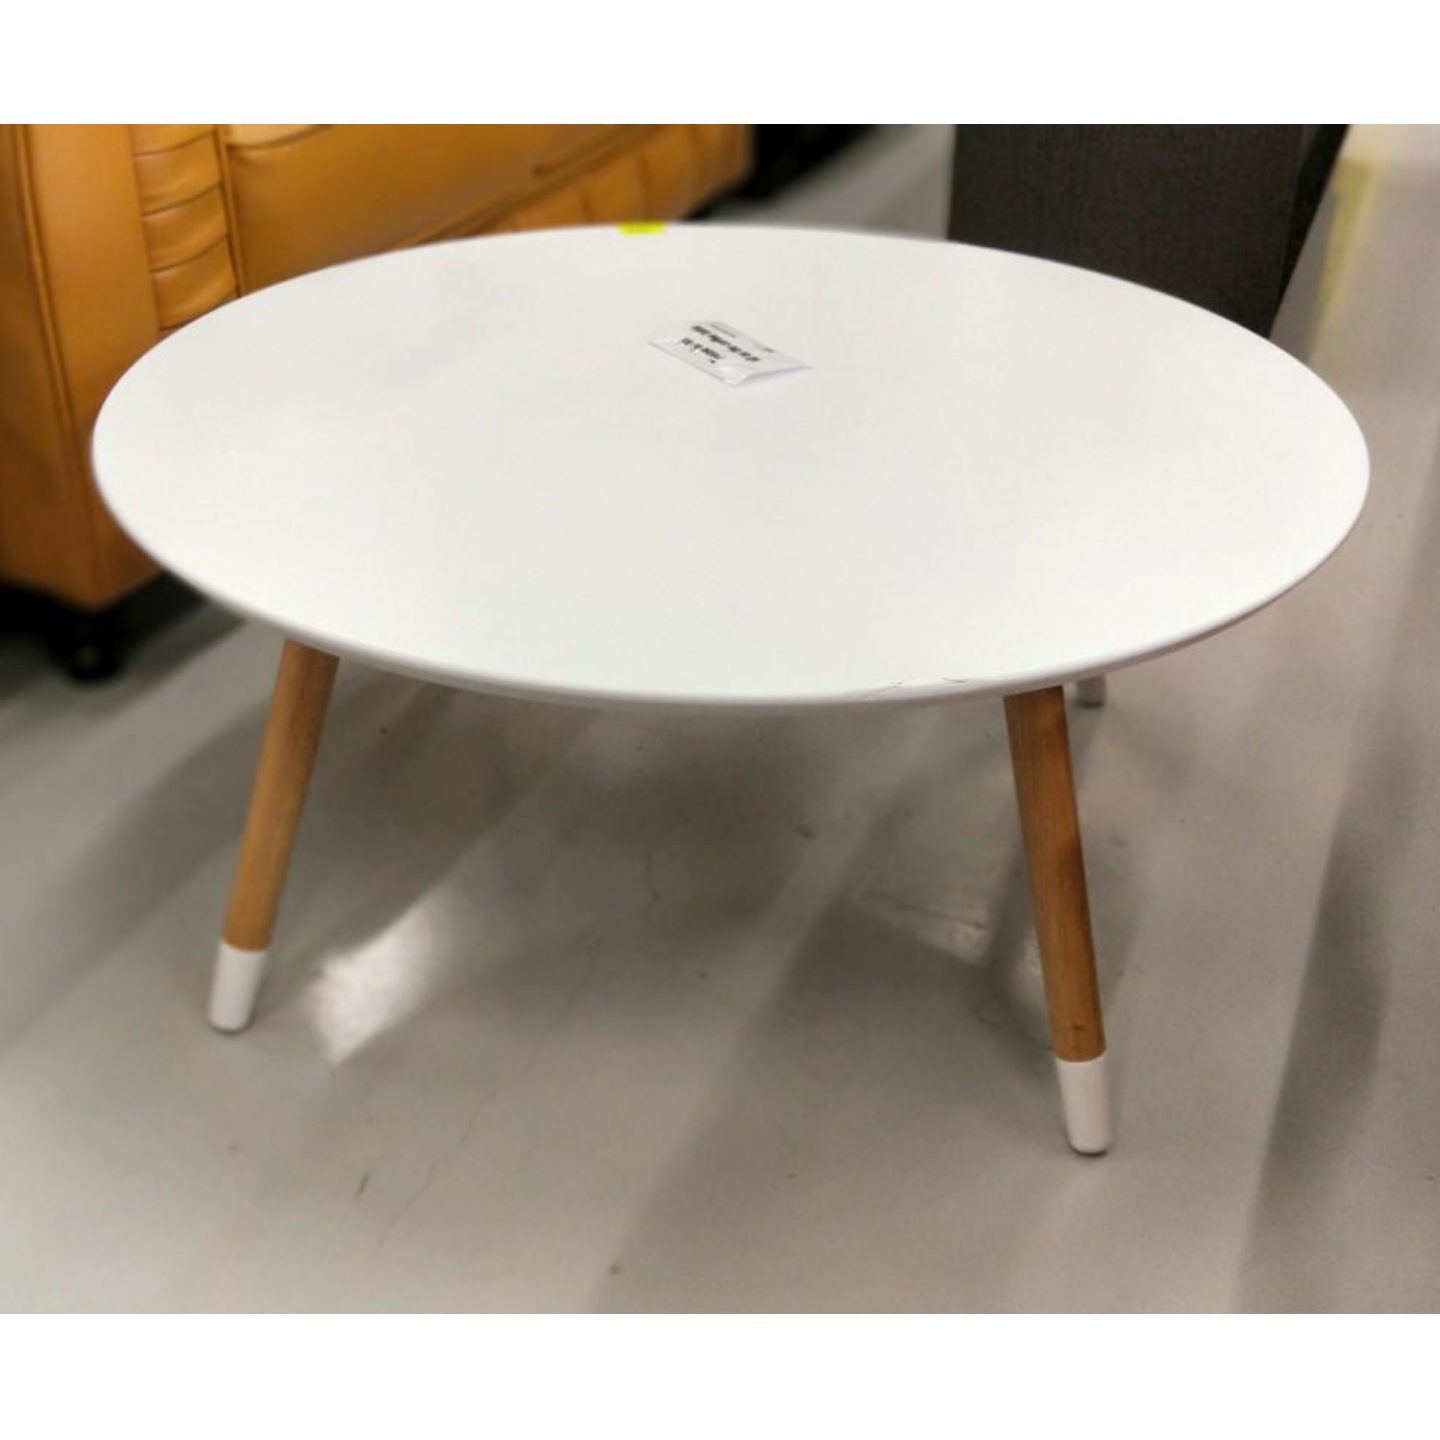 MODA Round Coffee Table in